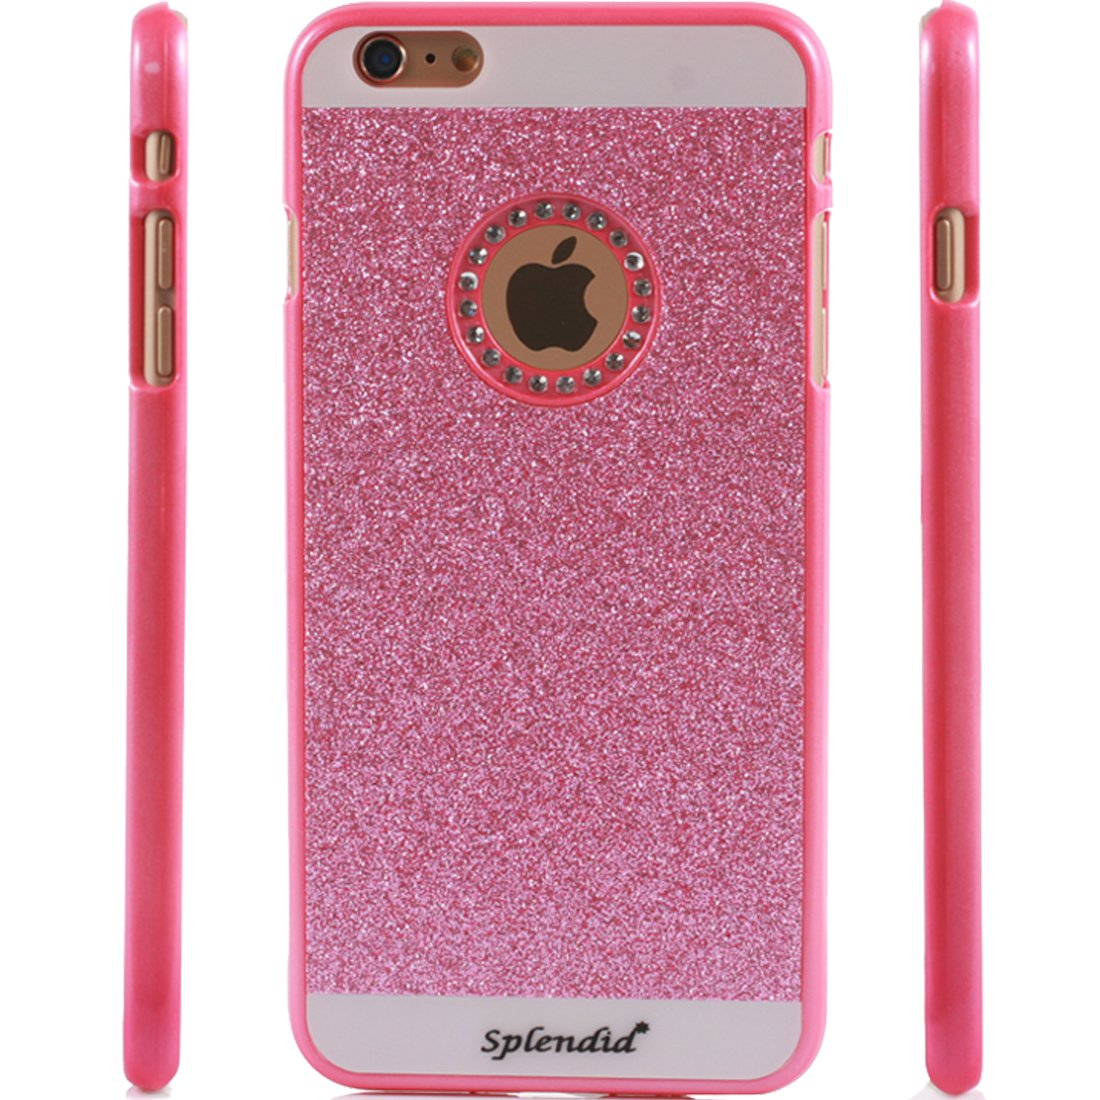 iphone 6 pink glitter case